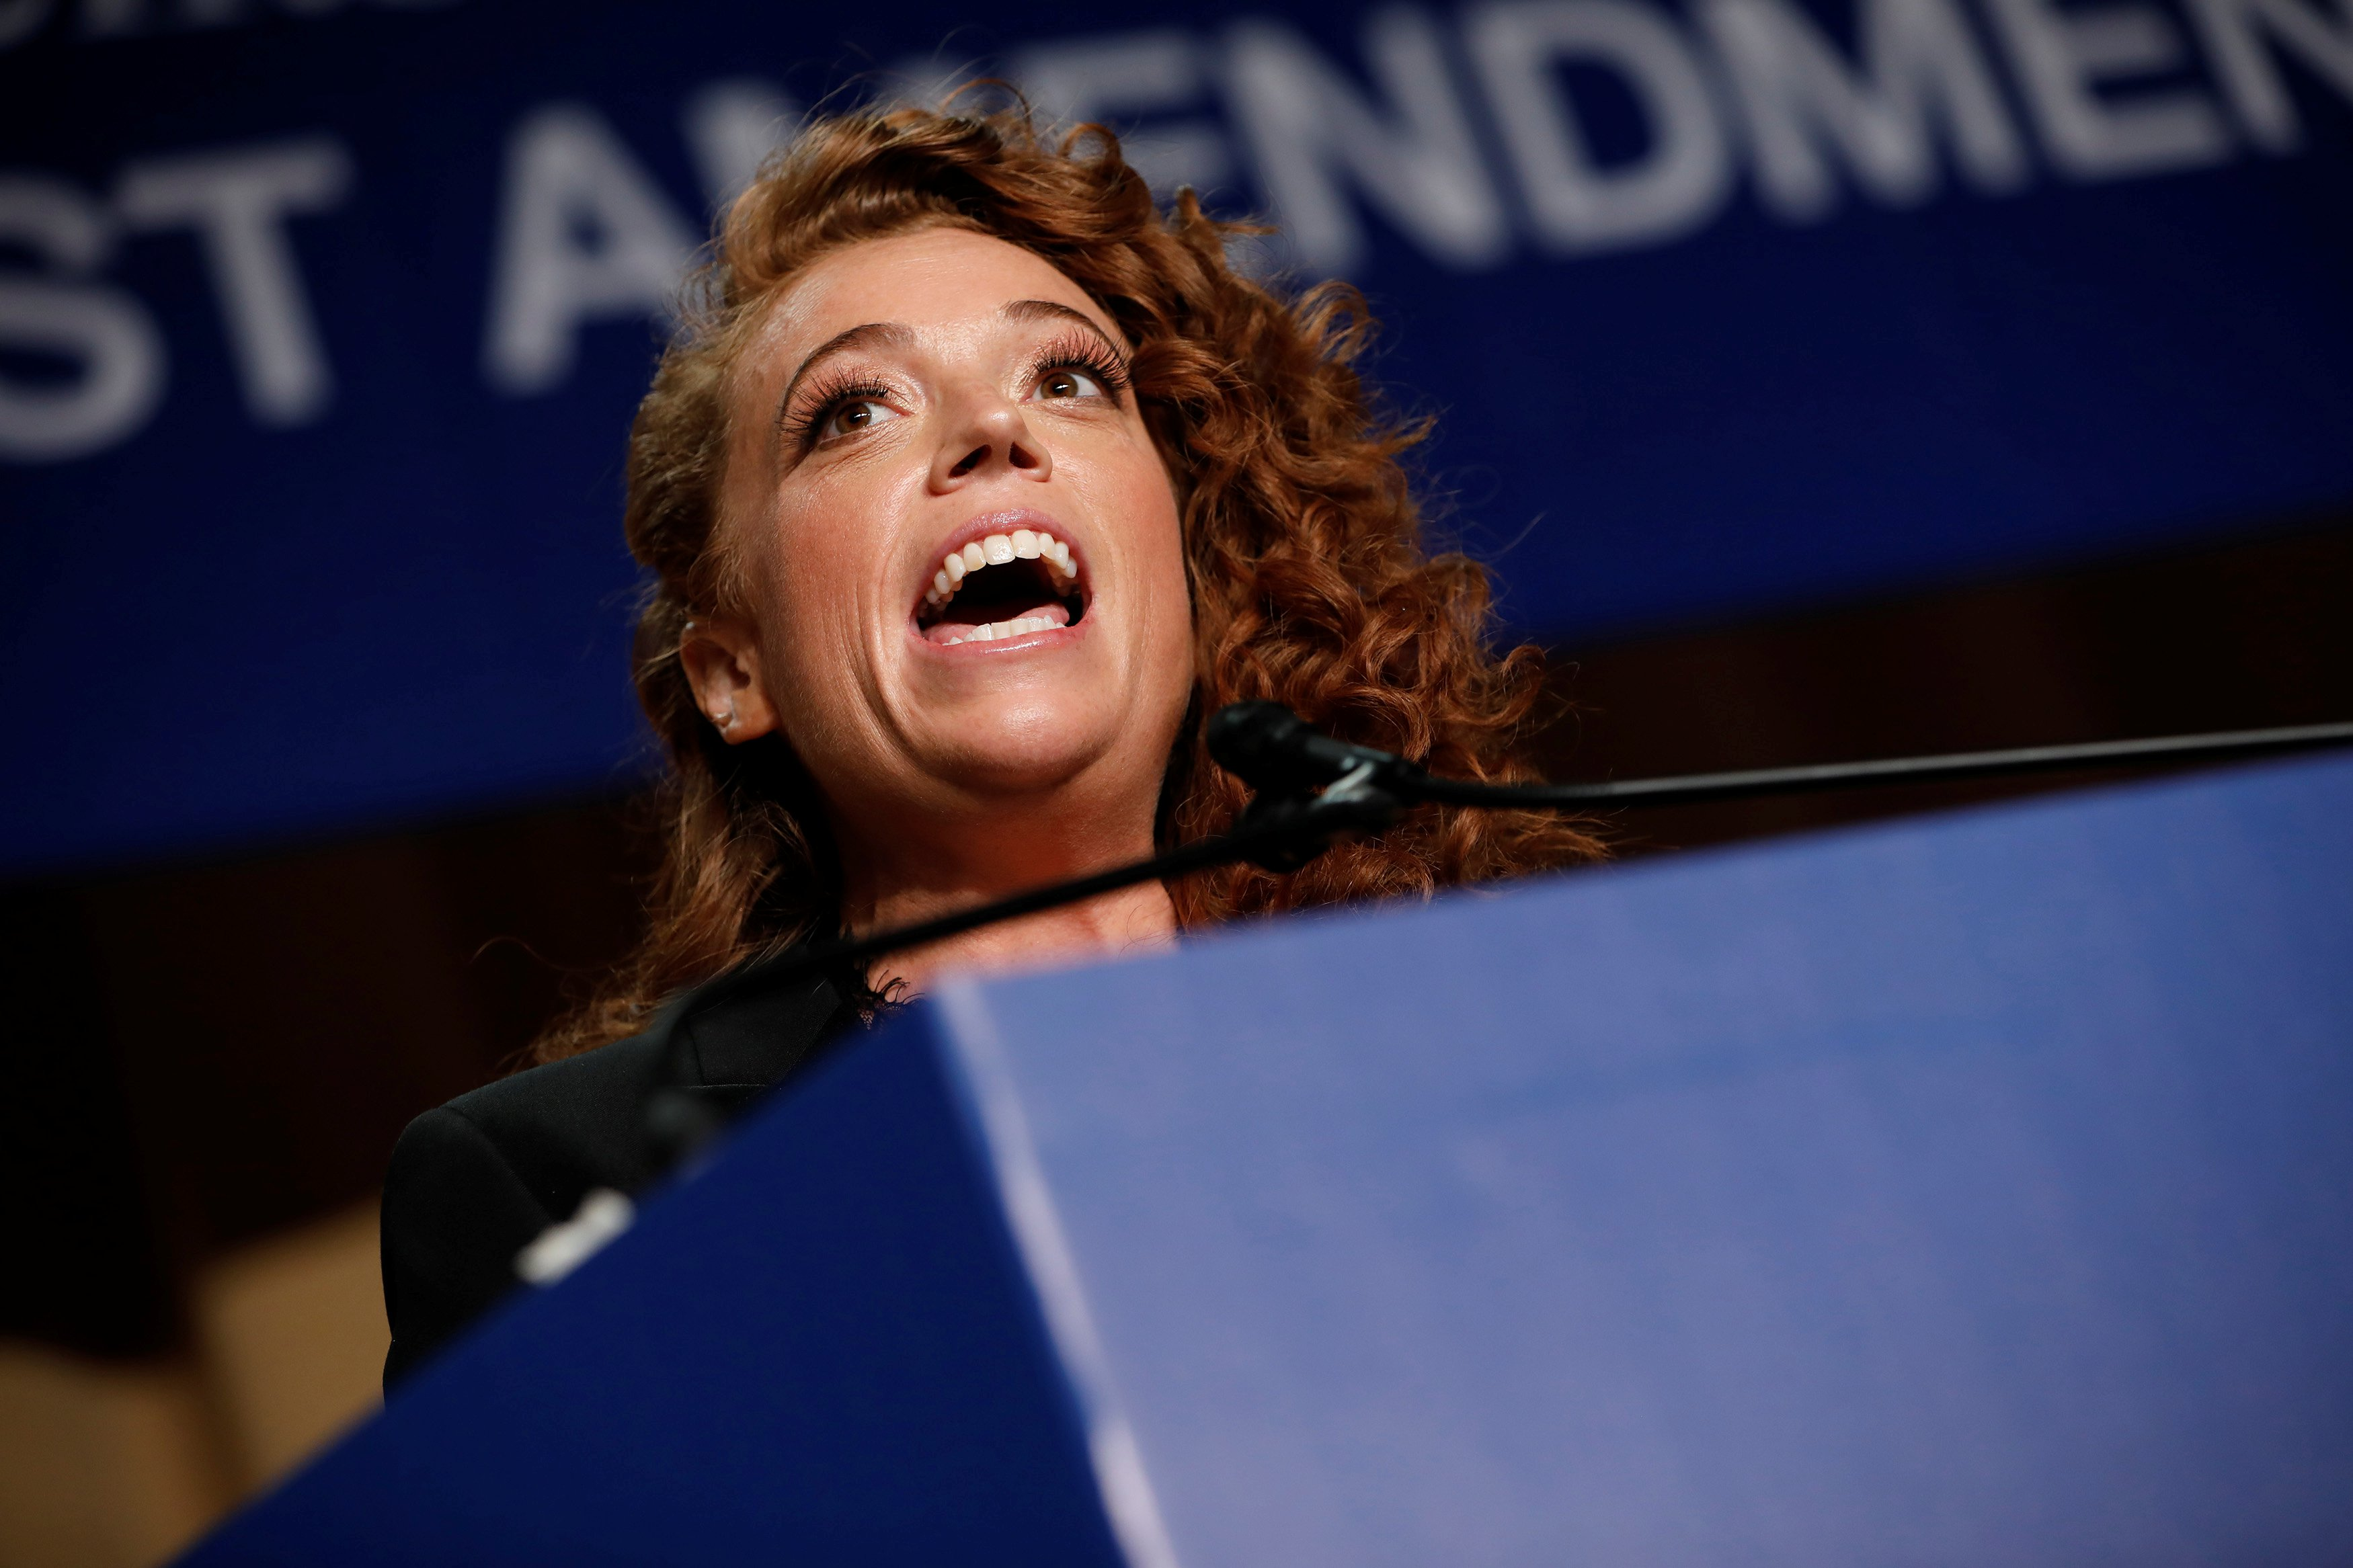 Backlash Against Comedian Michelle Wolf Is Ironic and Hypocritical